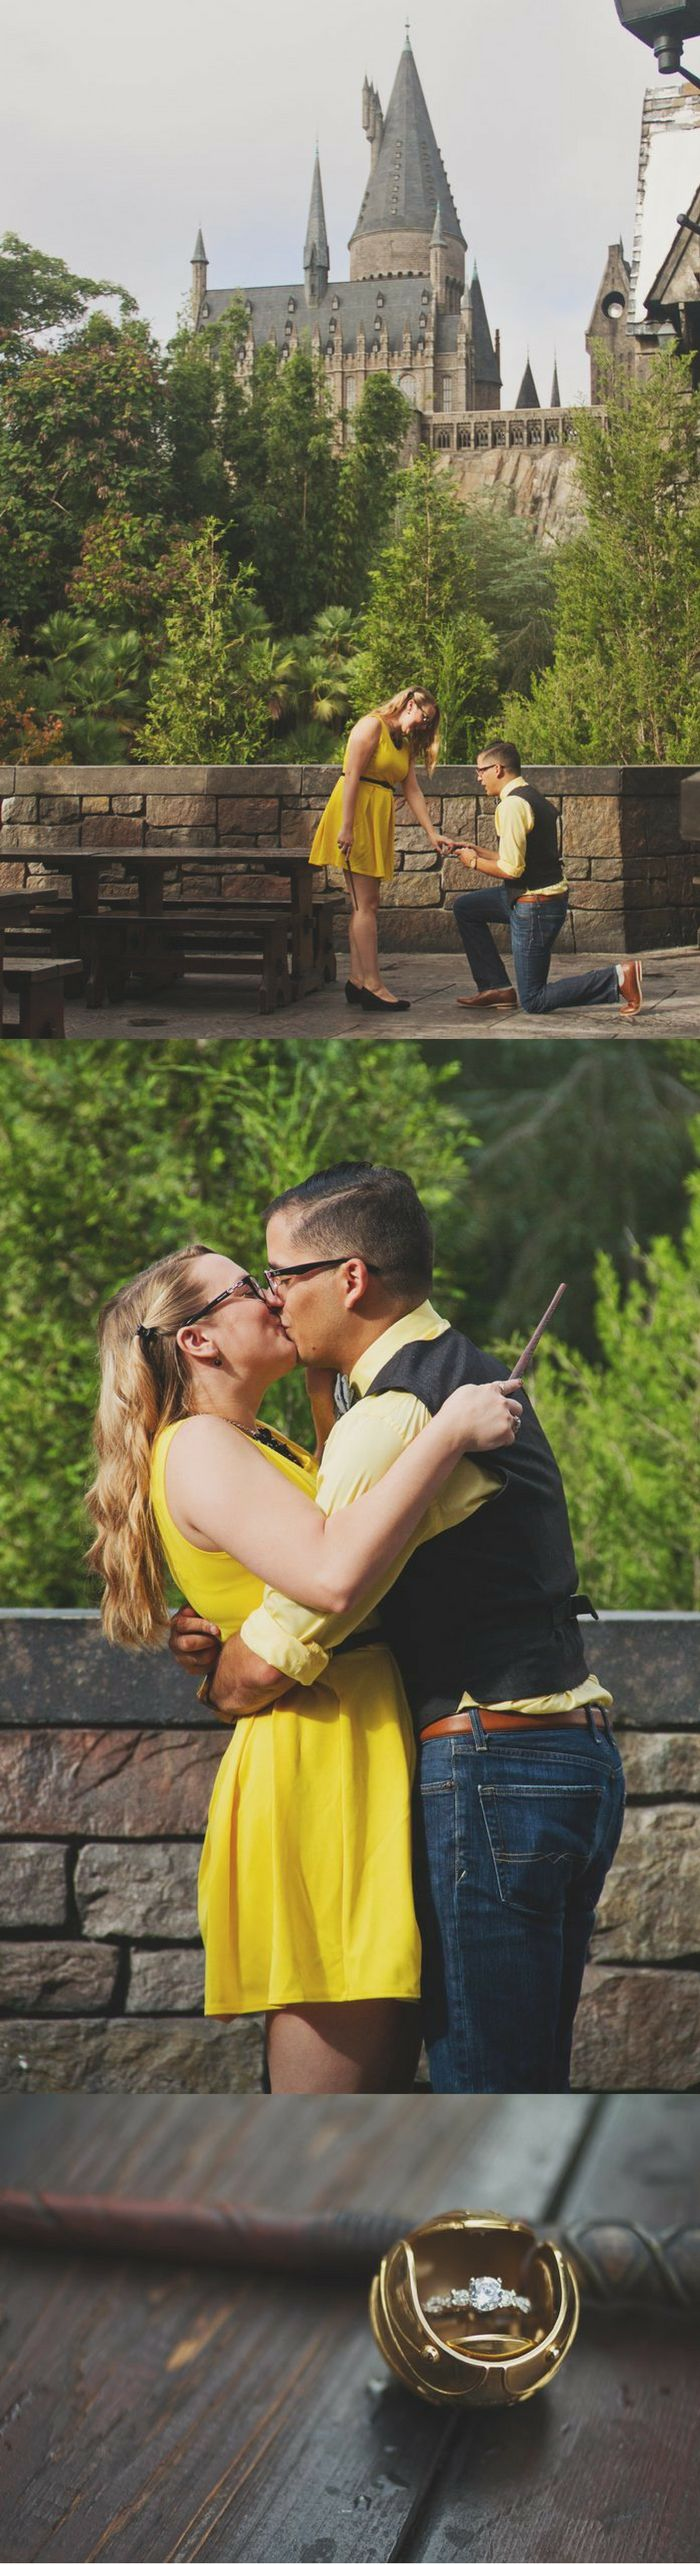 He surprised her with the most magical Harry Potter marriage proposal, complete with a golden snitch ring box!